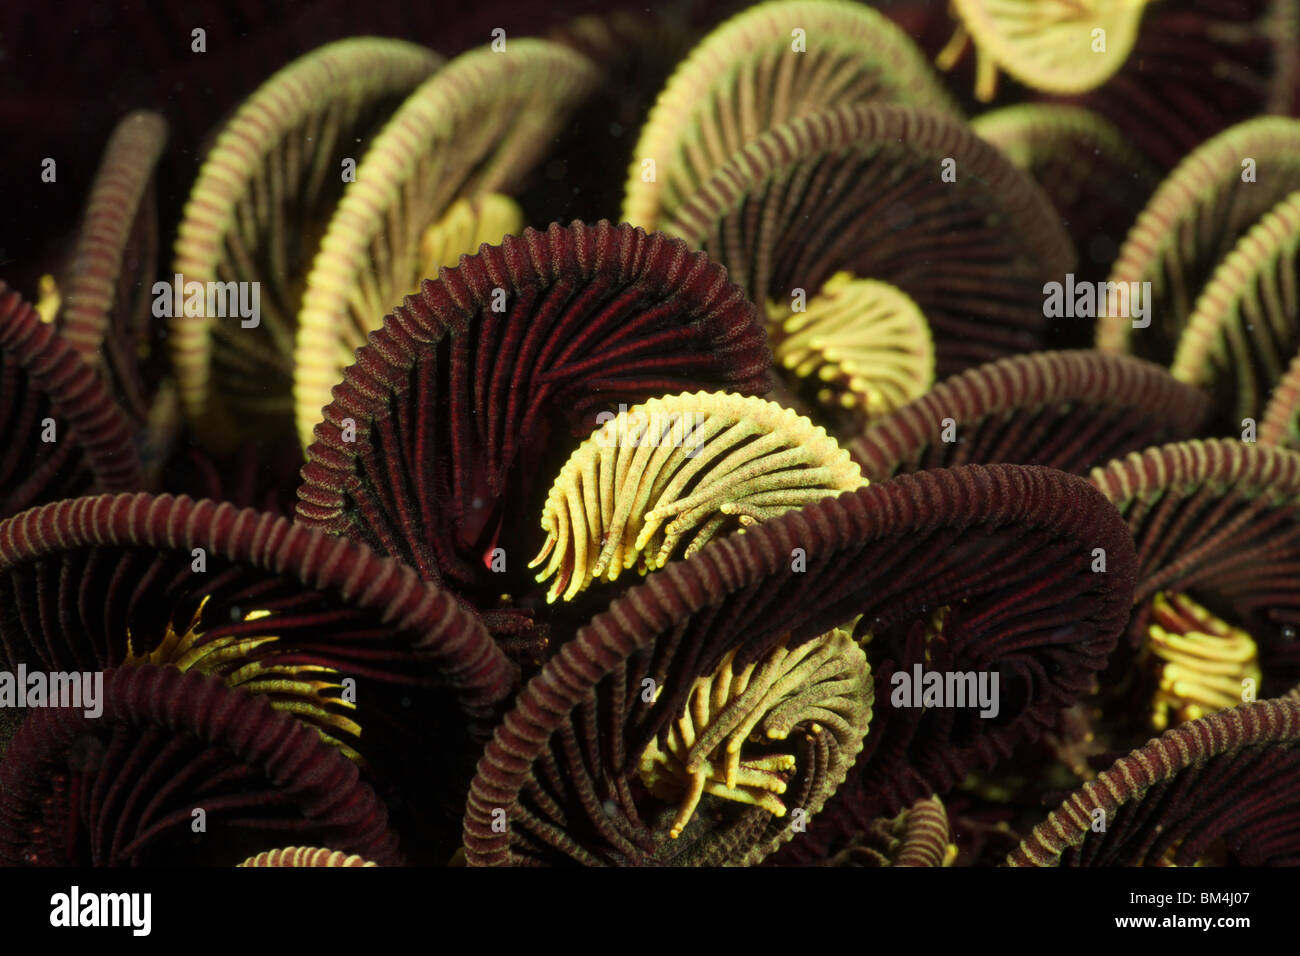 Tentacle of Crinoid, Comantheria sp., Raja Ampat, West Papua, Indonesia - Stock Image